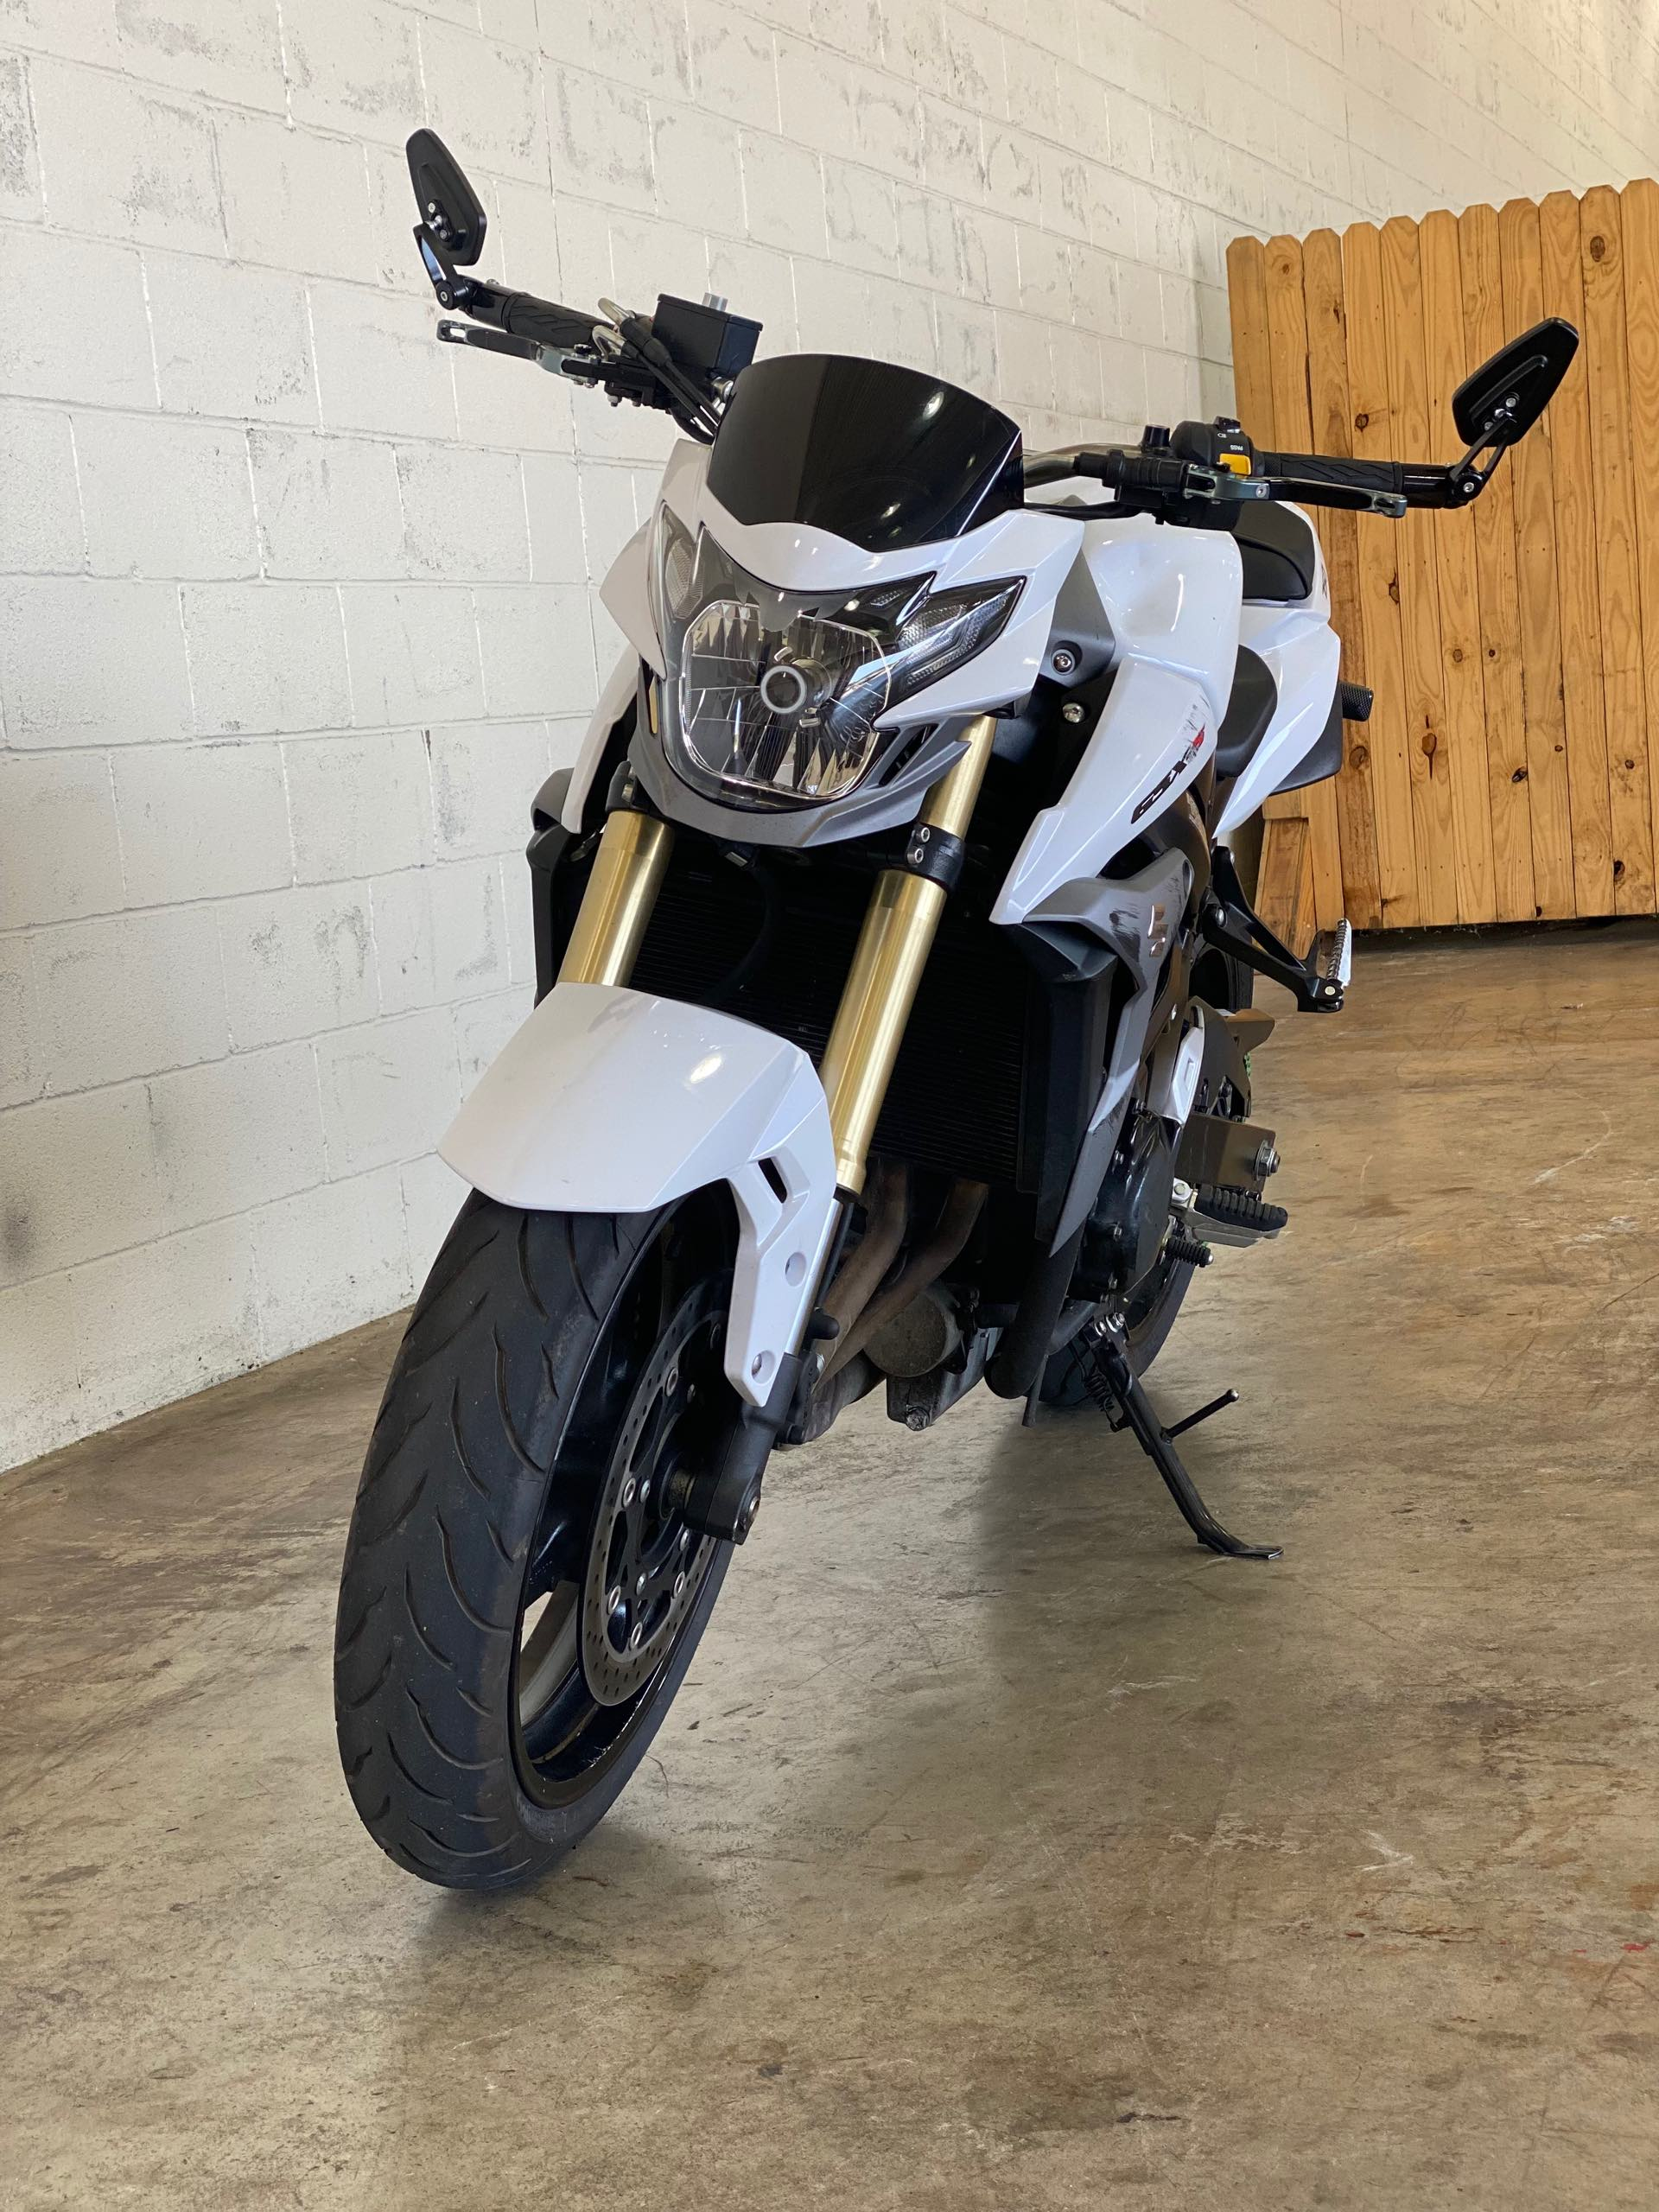 2016 Suzuki GSX-S 750 at Twisted Cycles